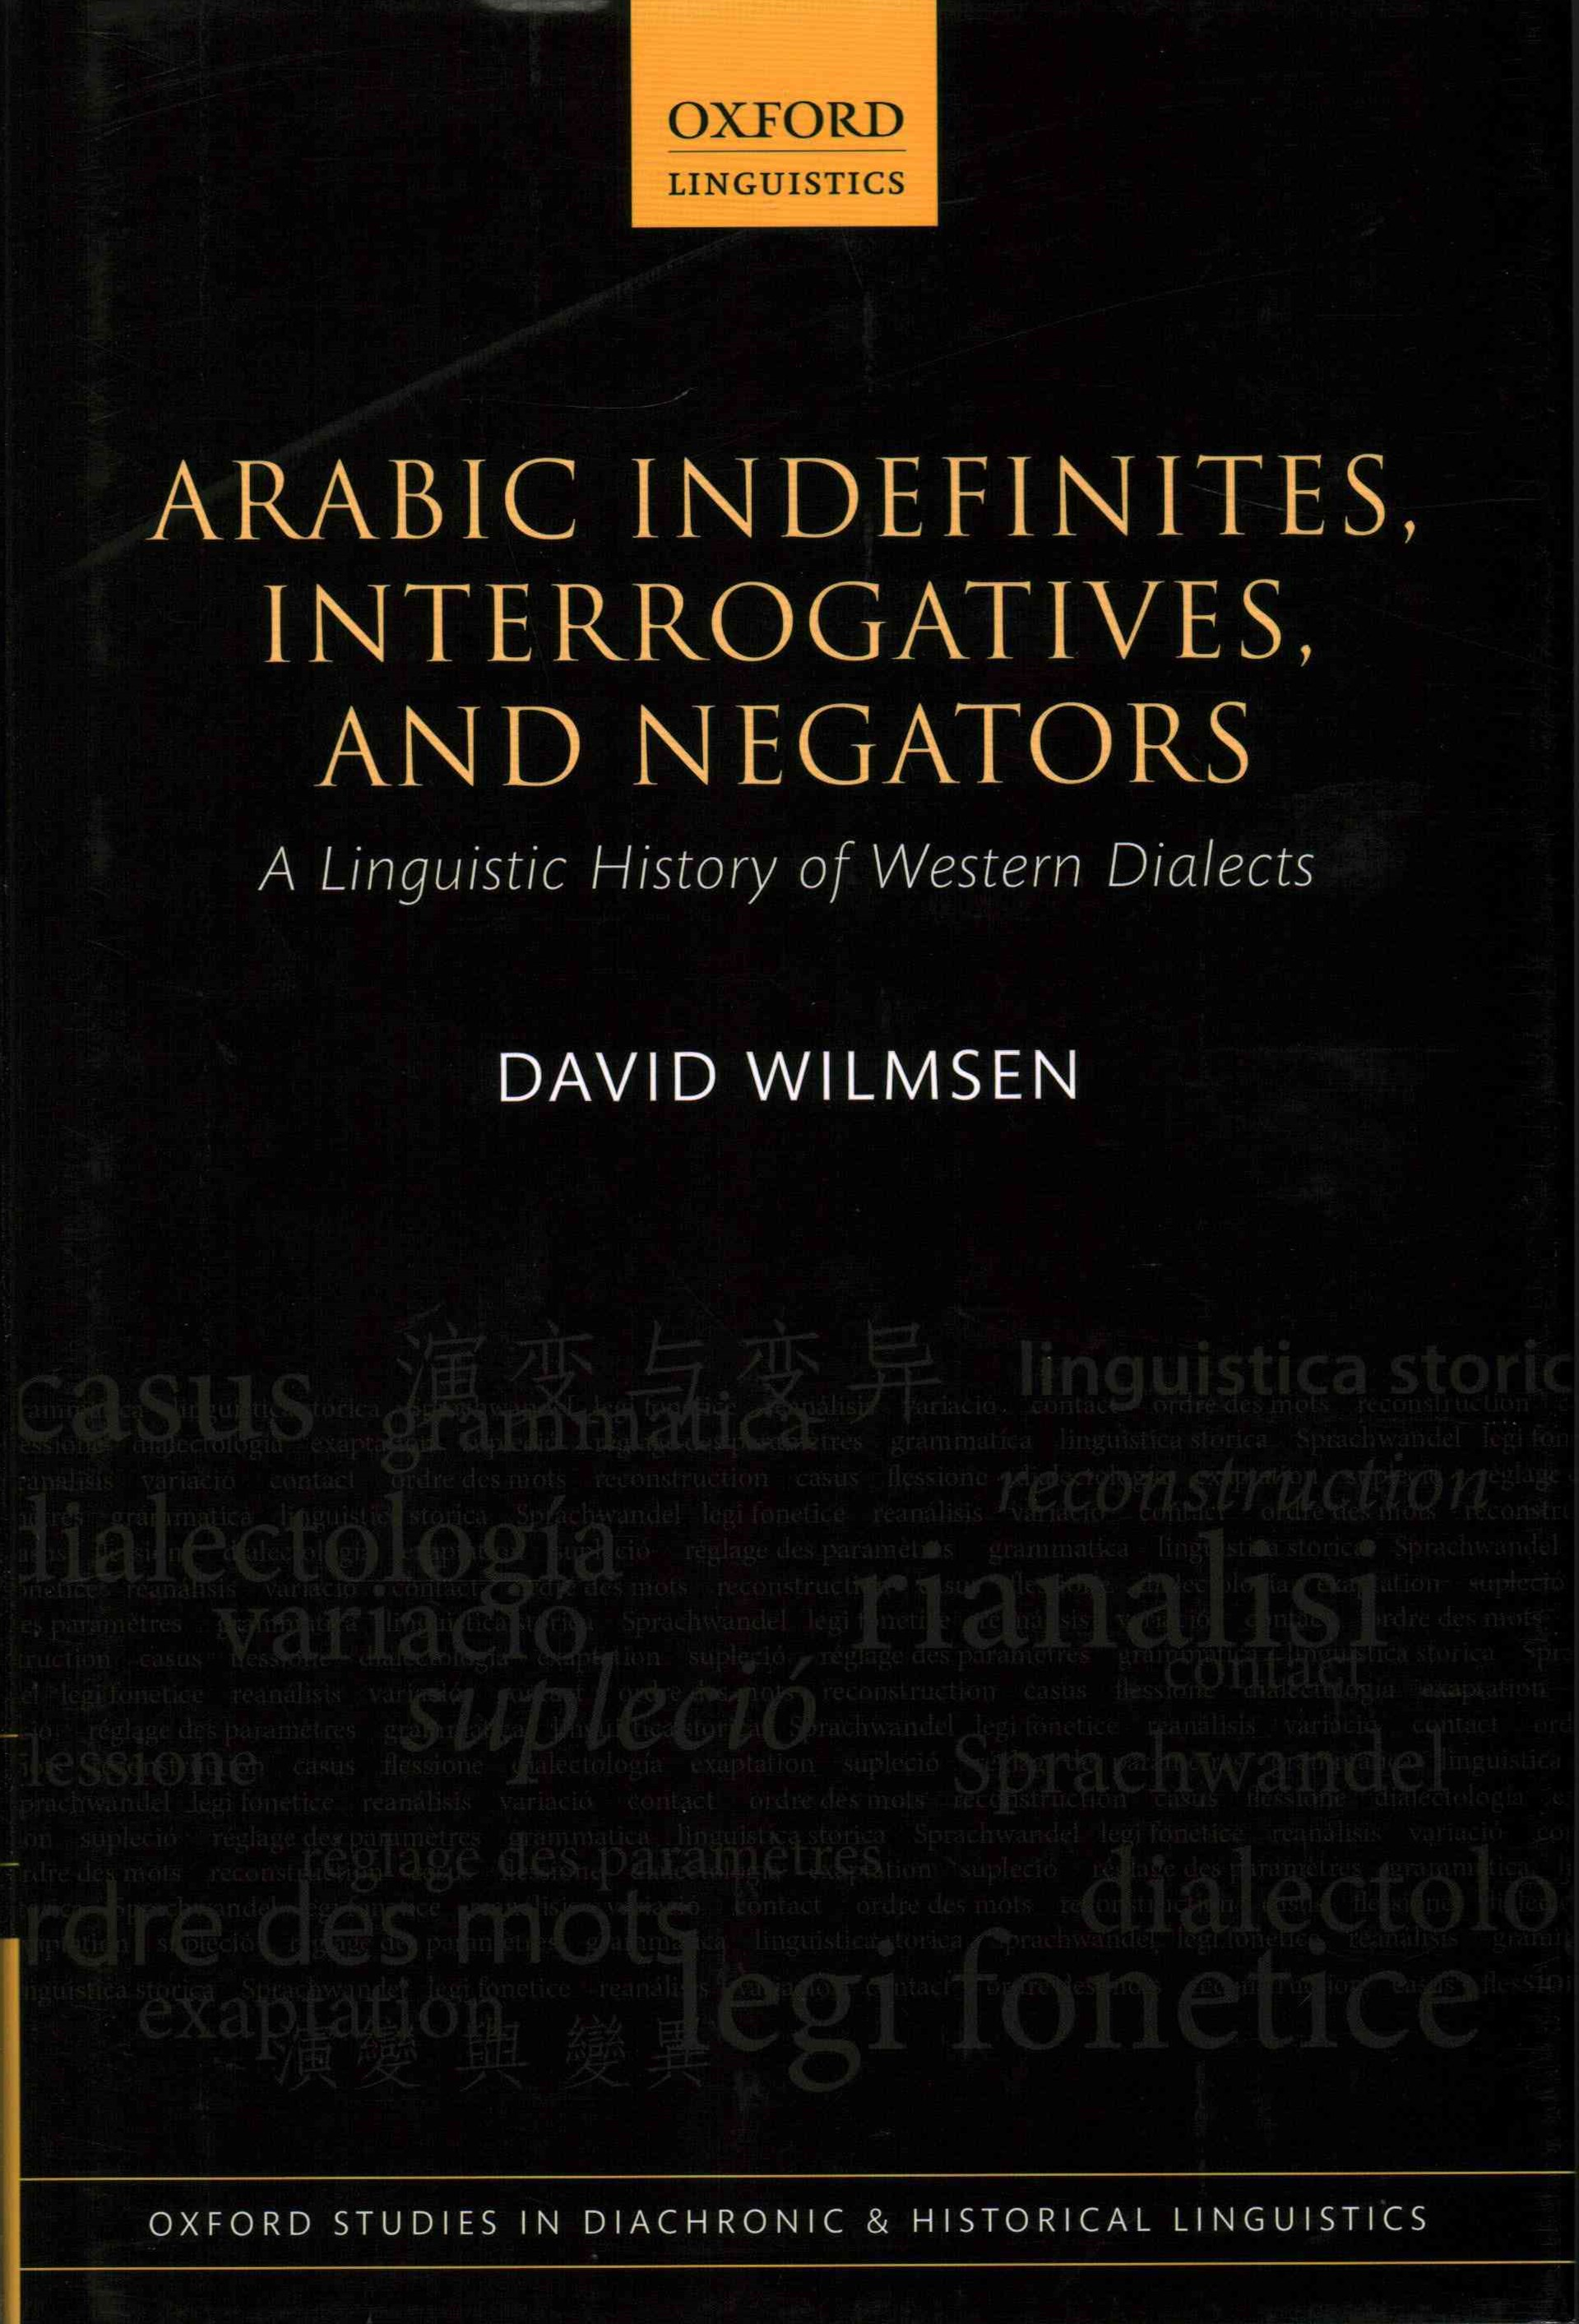 Arabic Indefinites, Interrogatives, and Negators